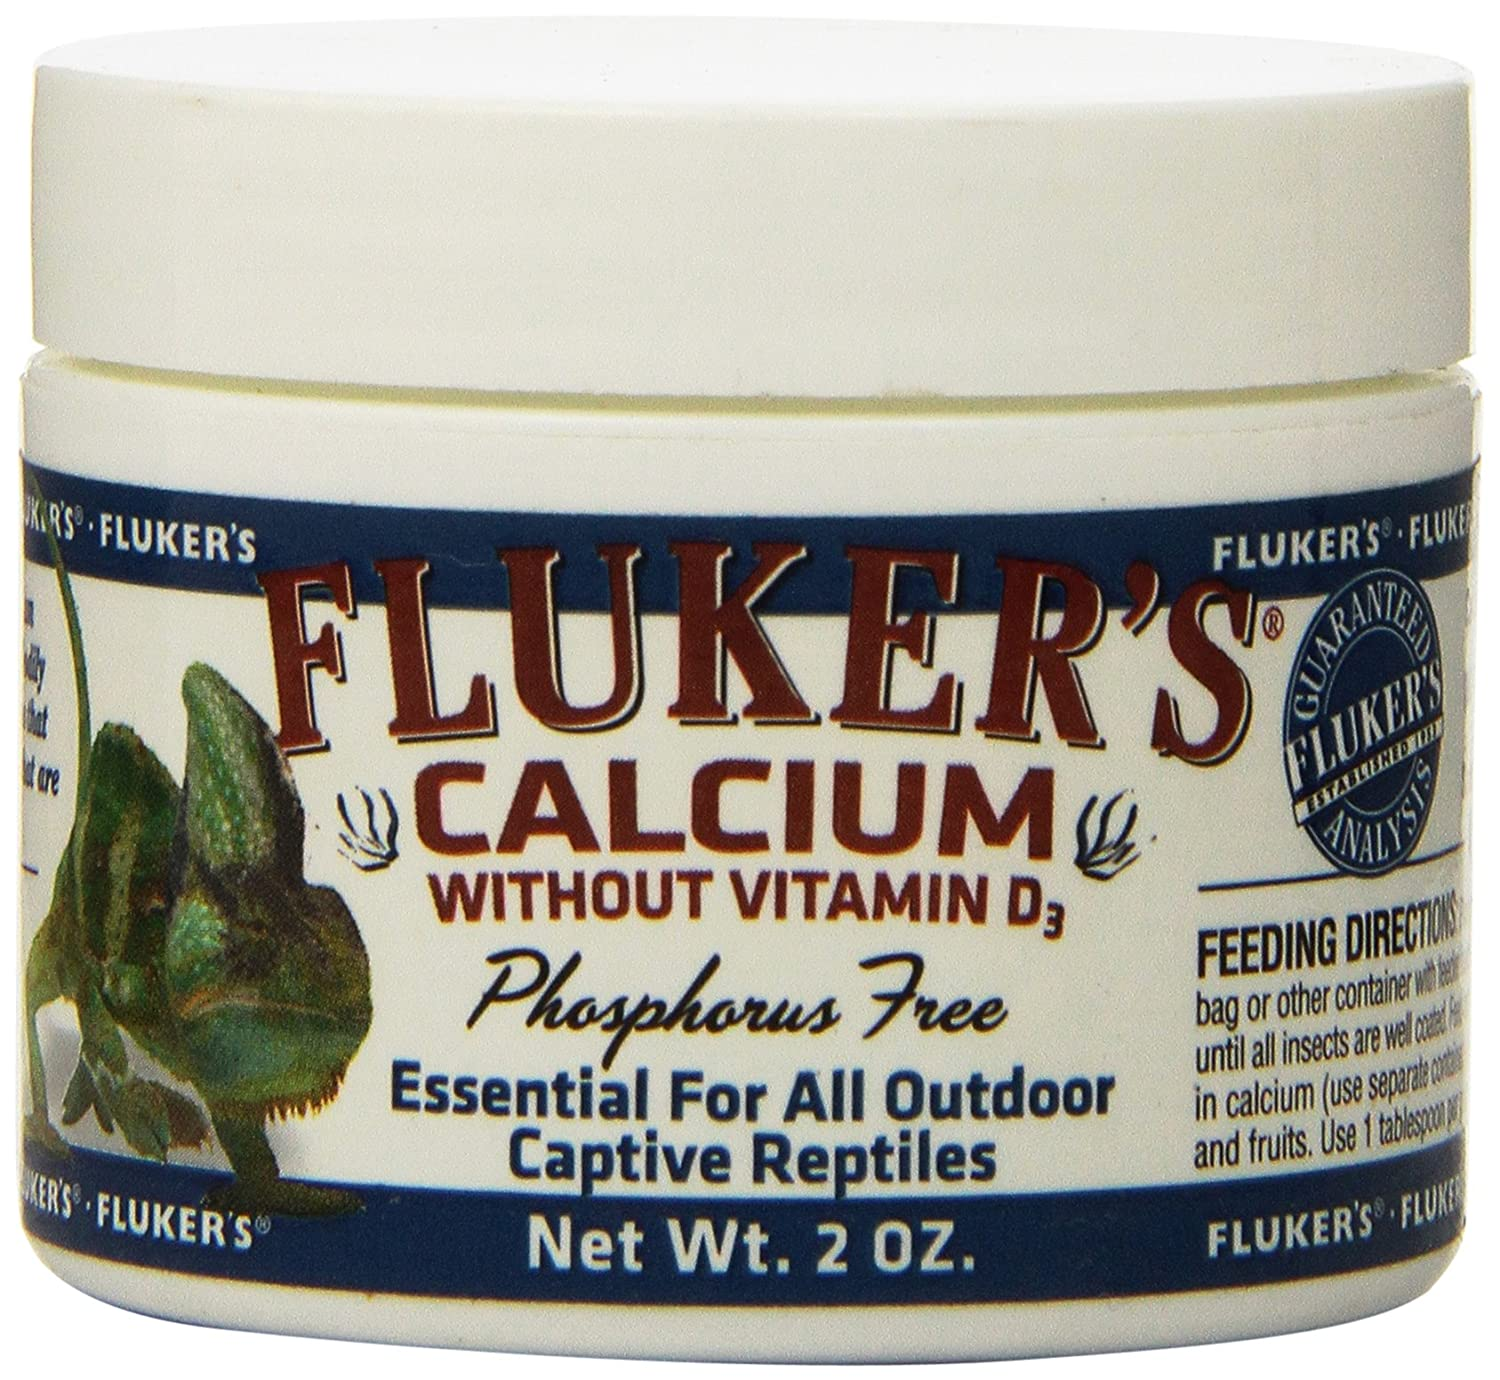 Fluker Labs SFK73015 Reptile Calcium Supplement without Vitamin D3, 2-Ounce by Fluker Labs B0029UCPXE